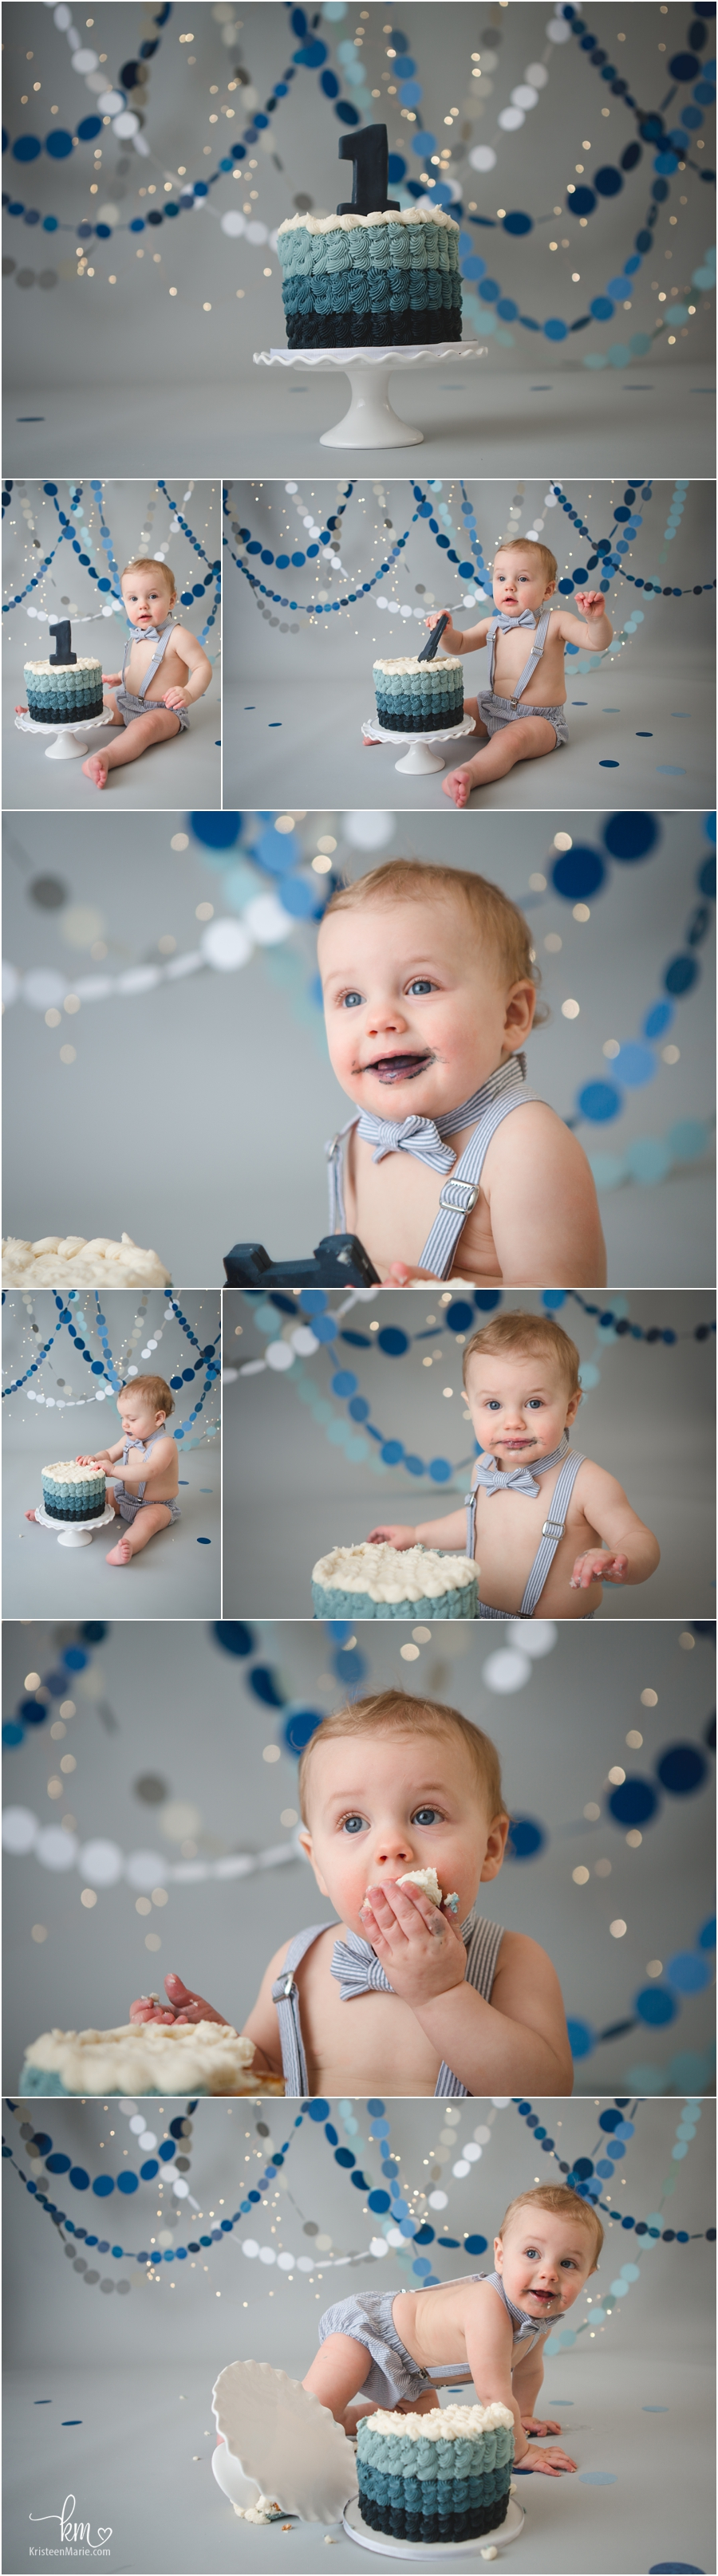 blue ombre with white and grey - 1st birthday theme - cake smas photography session by KristeenMarie Photography